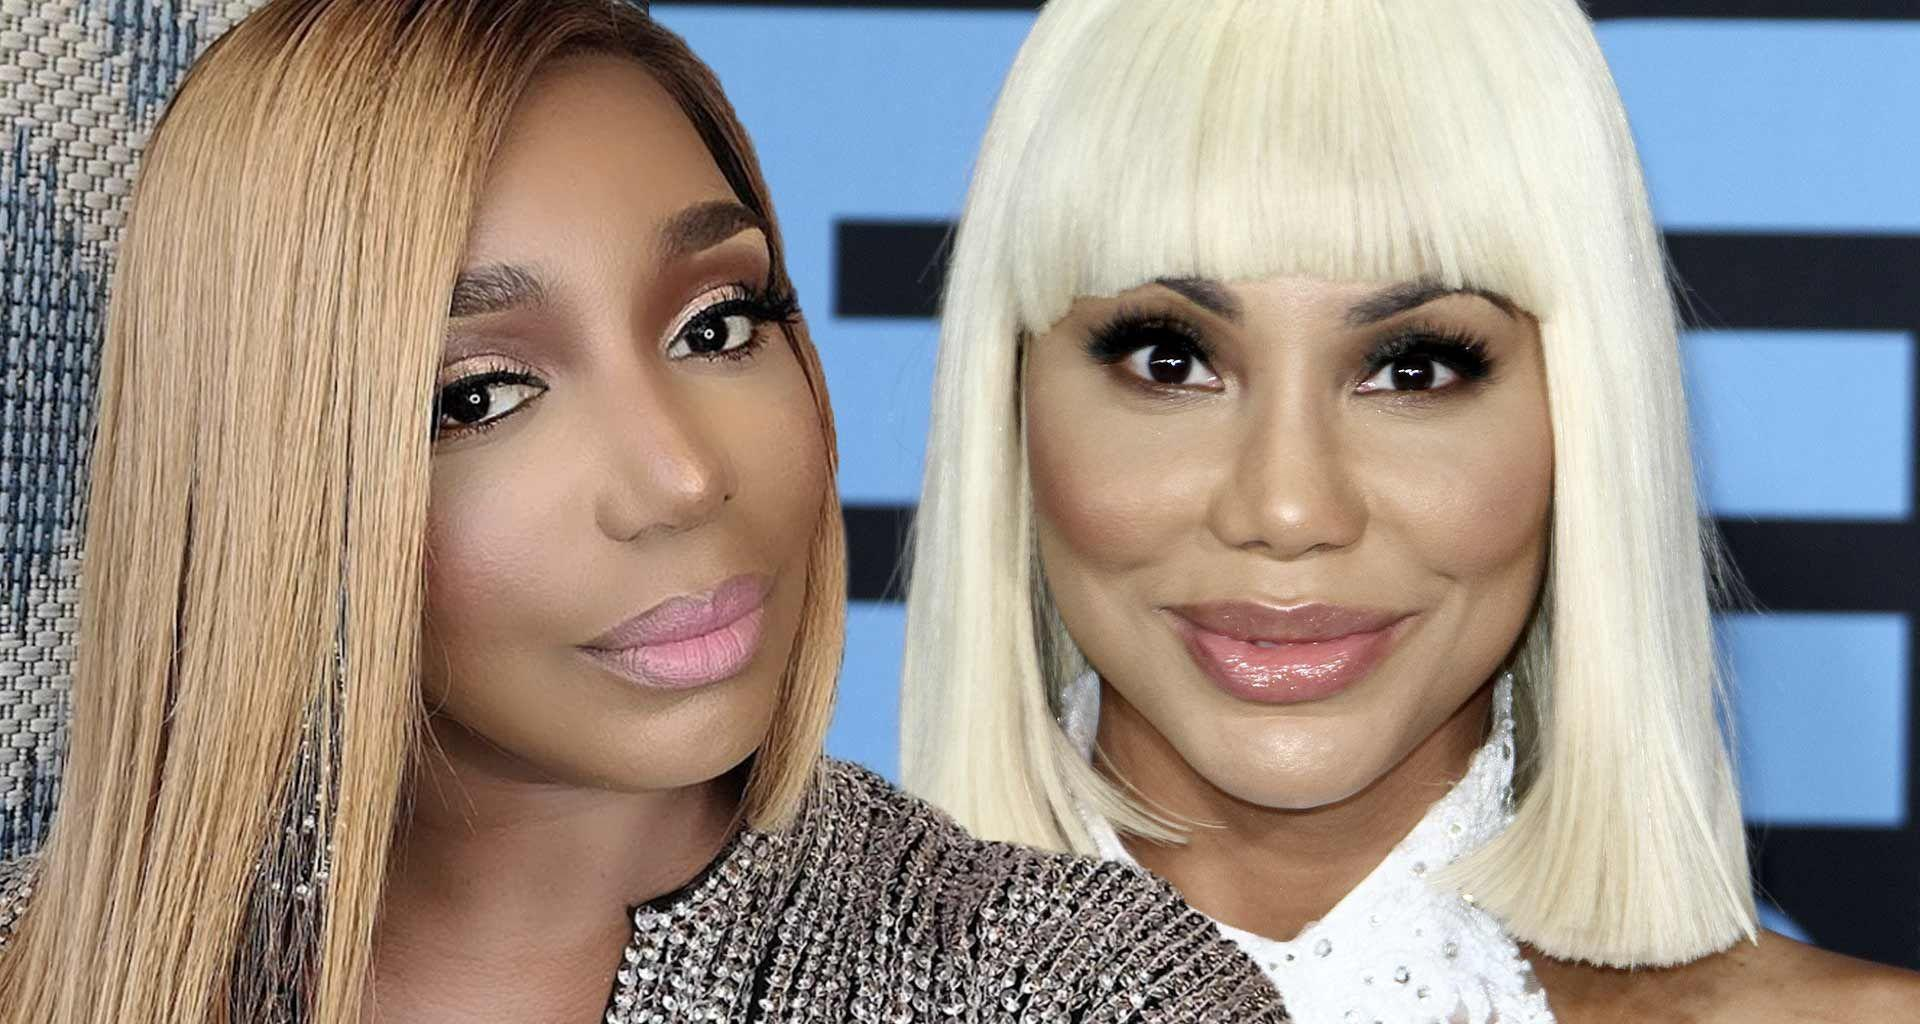 NeNe Leakes Shares An Update About Tamar Braxton And Her Own Life - See The Video